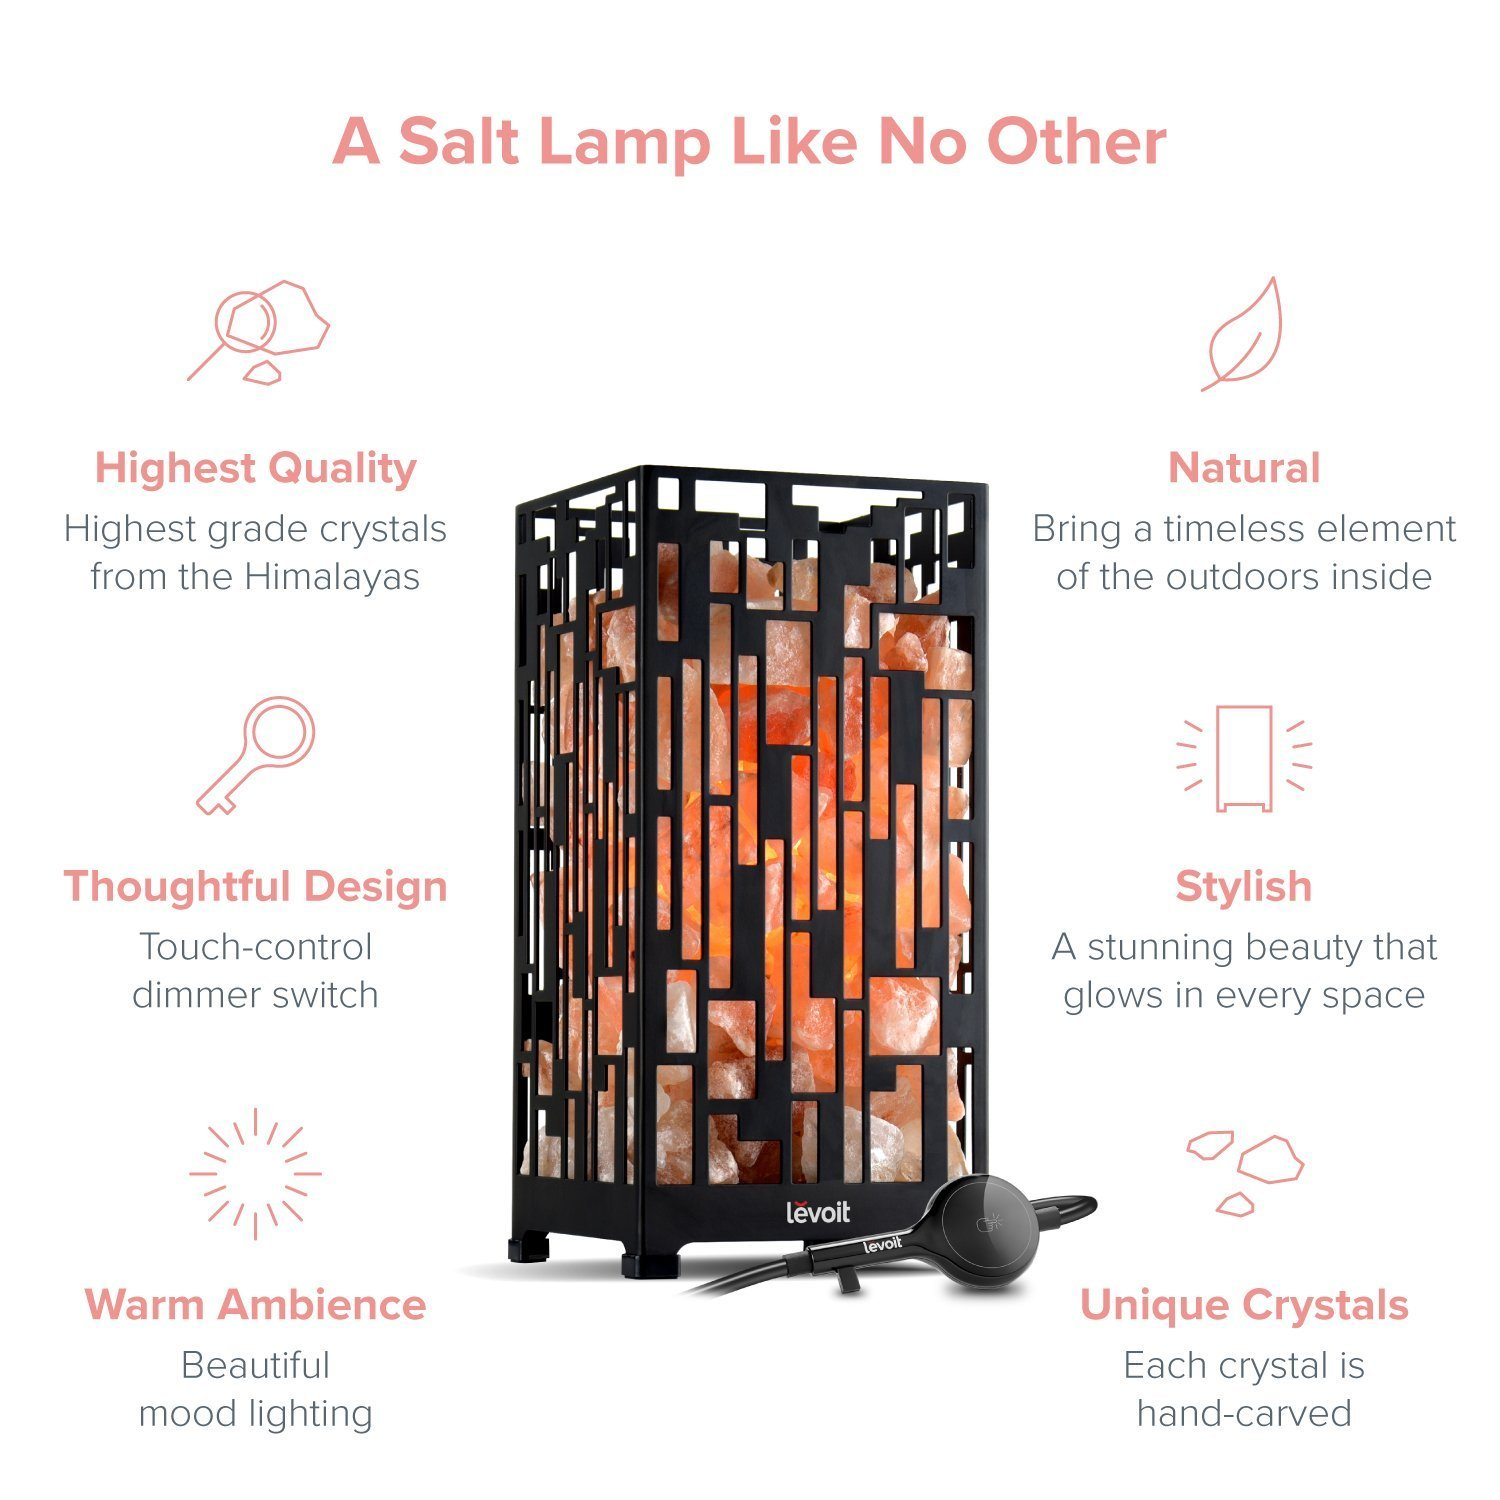 Levoit Enza Himalayan Hand Carved Natural Himilian Hymalain Pink Salt Rock Lamps with Metal Housing, Touch Dimmer Switch, 3 Bulbs, UL-Listed Cord and Luxury Gift Box, Medium by LEVOIT (Image #7)